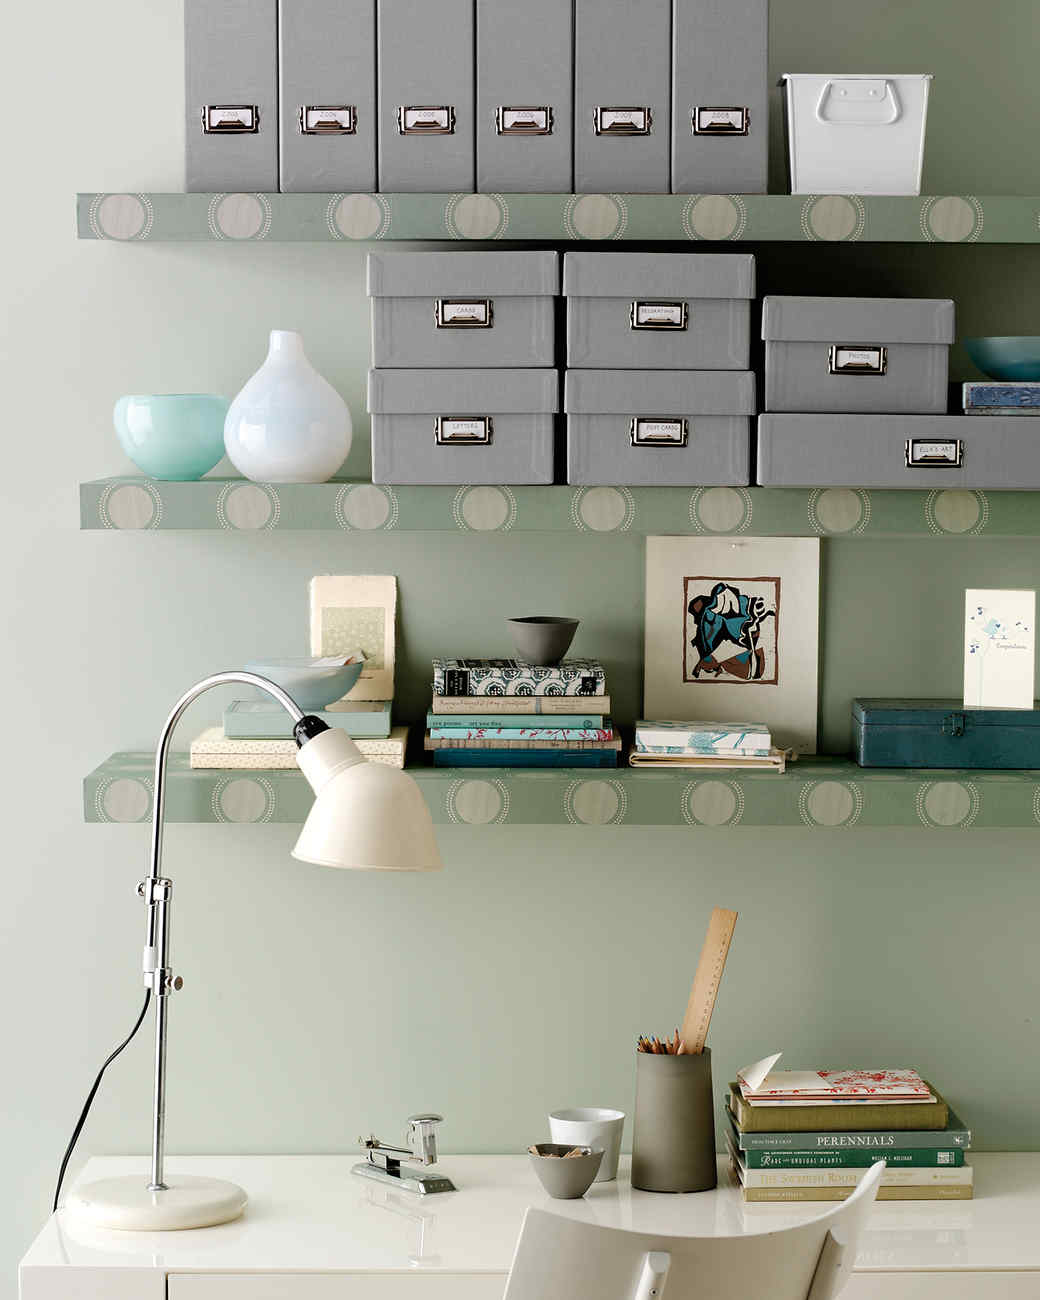 5 Genius Approaches to Shelving (Plus 2 Tips to Keep Them Secure)